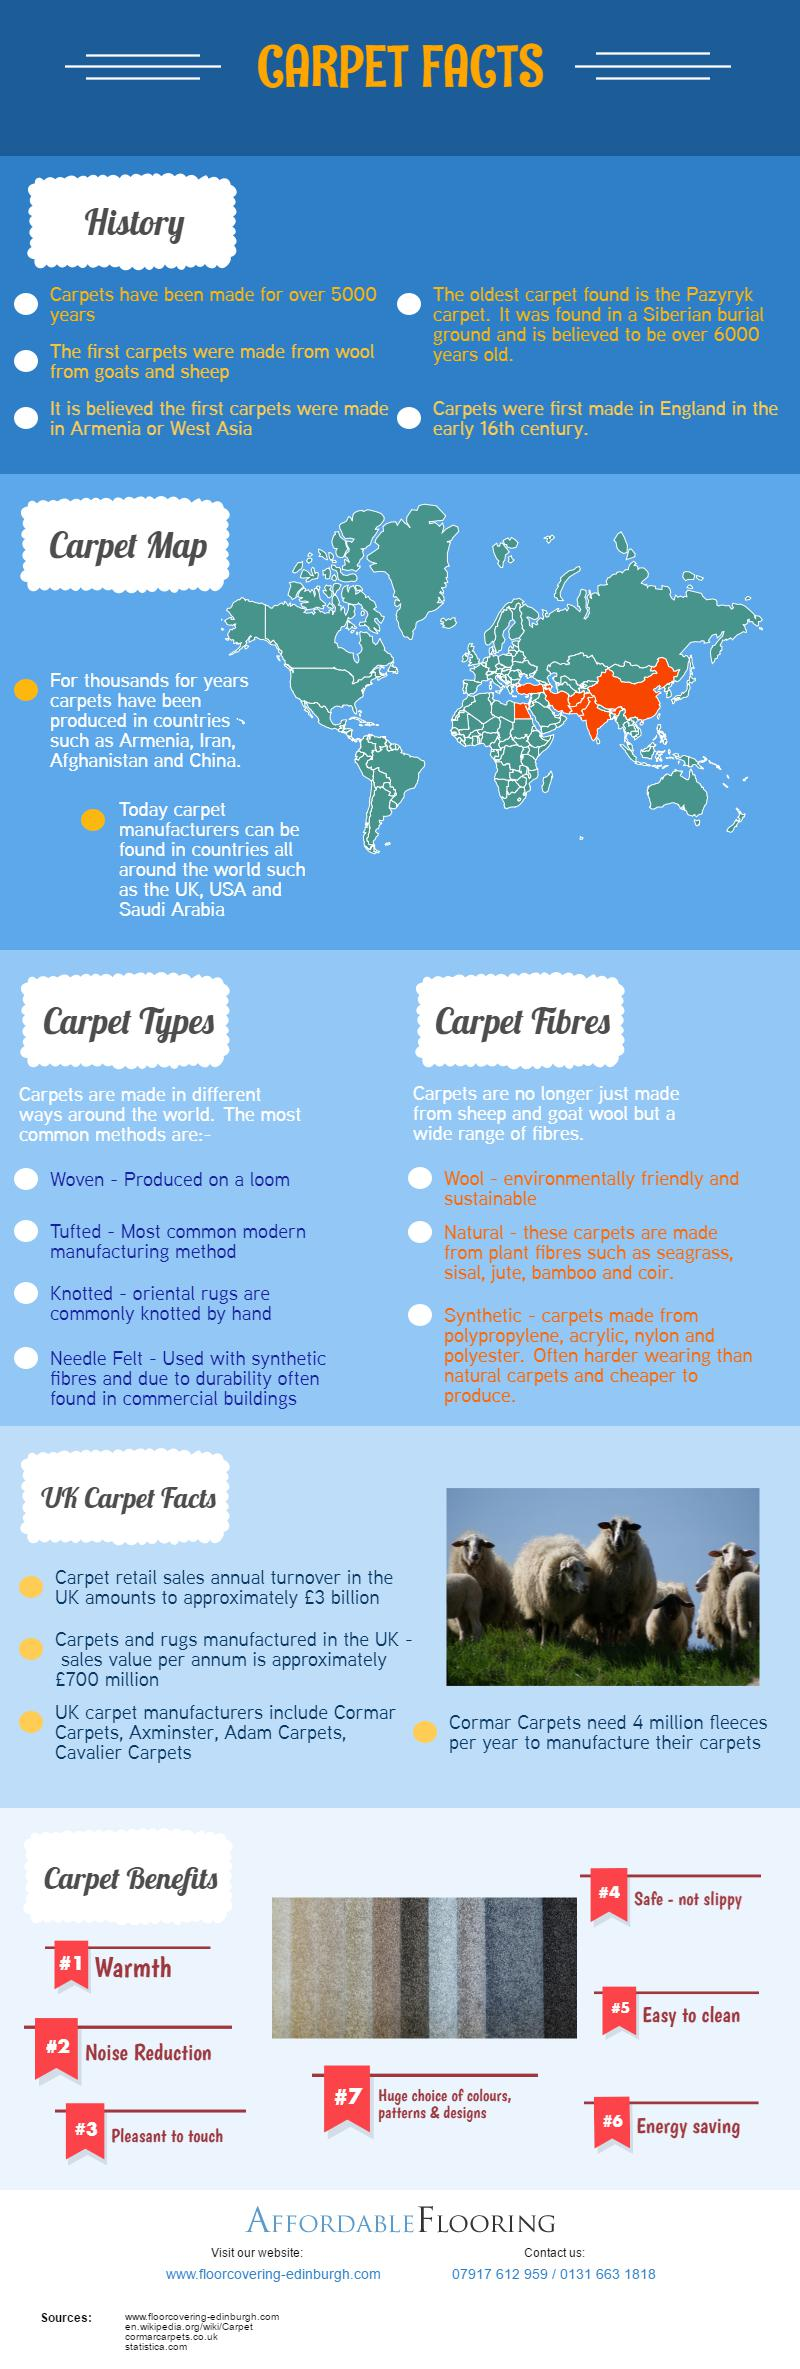 Carpet facts infographic and benefits of carpet